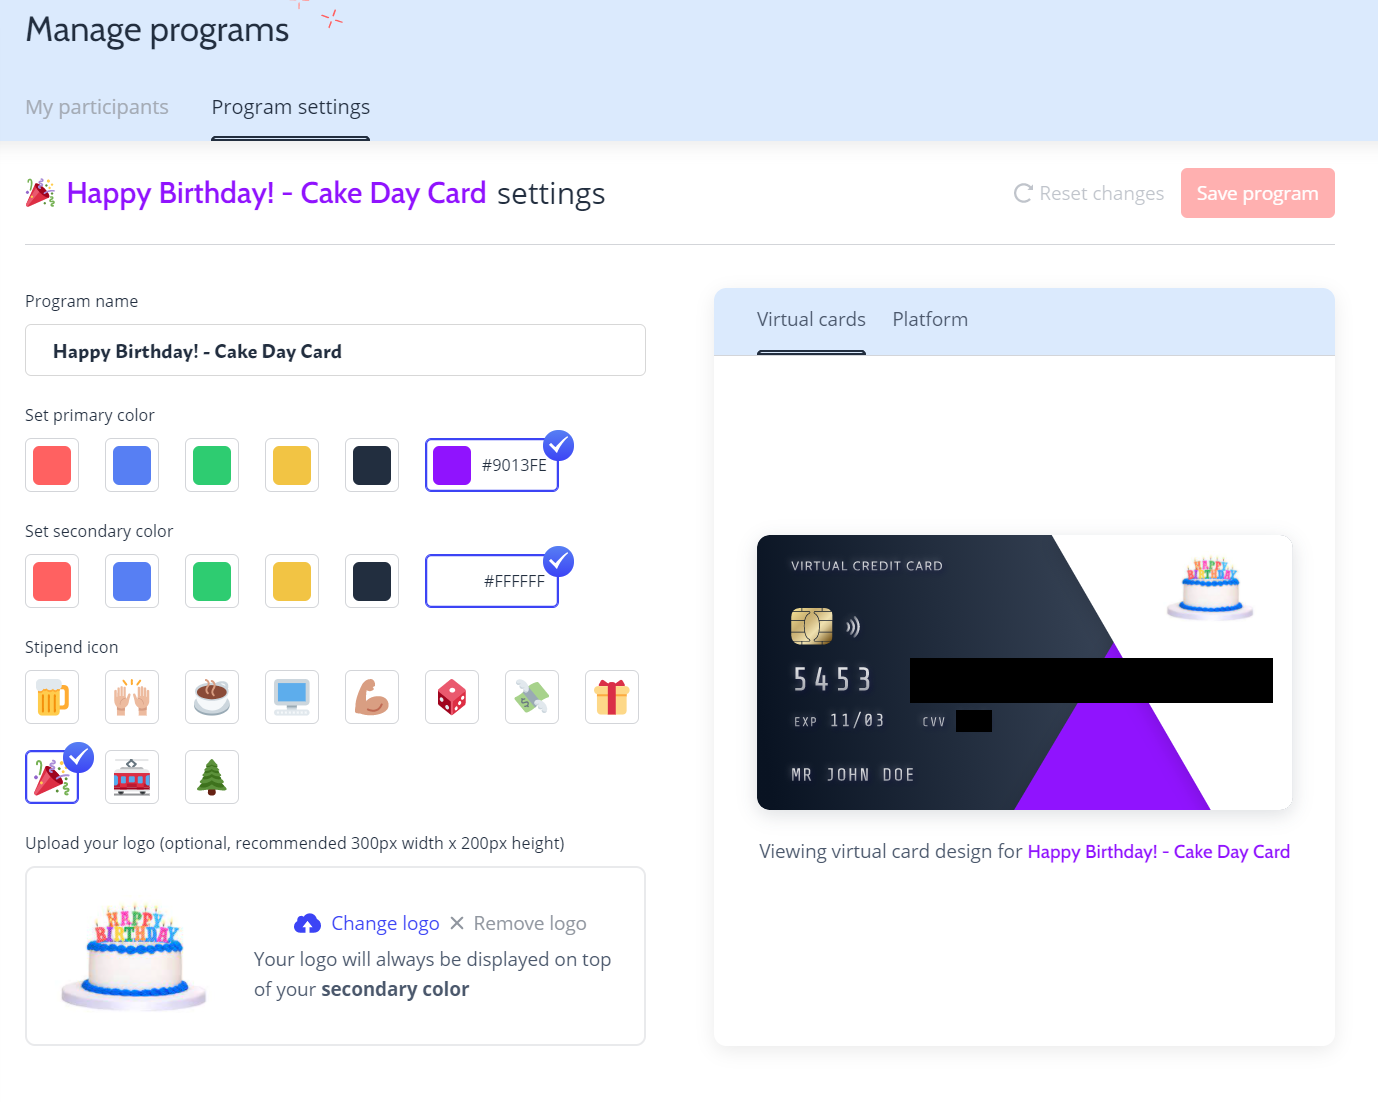 A Hoppier corporate gifting virtual credit card designed with company colors and a logo